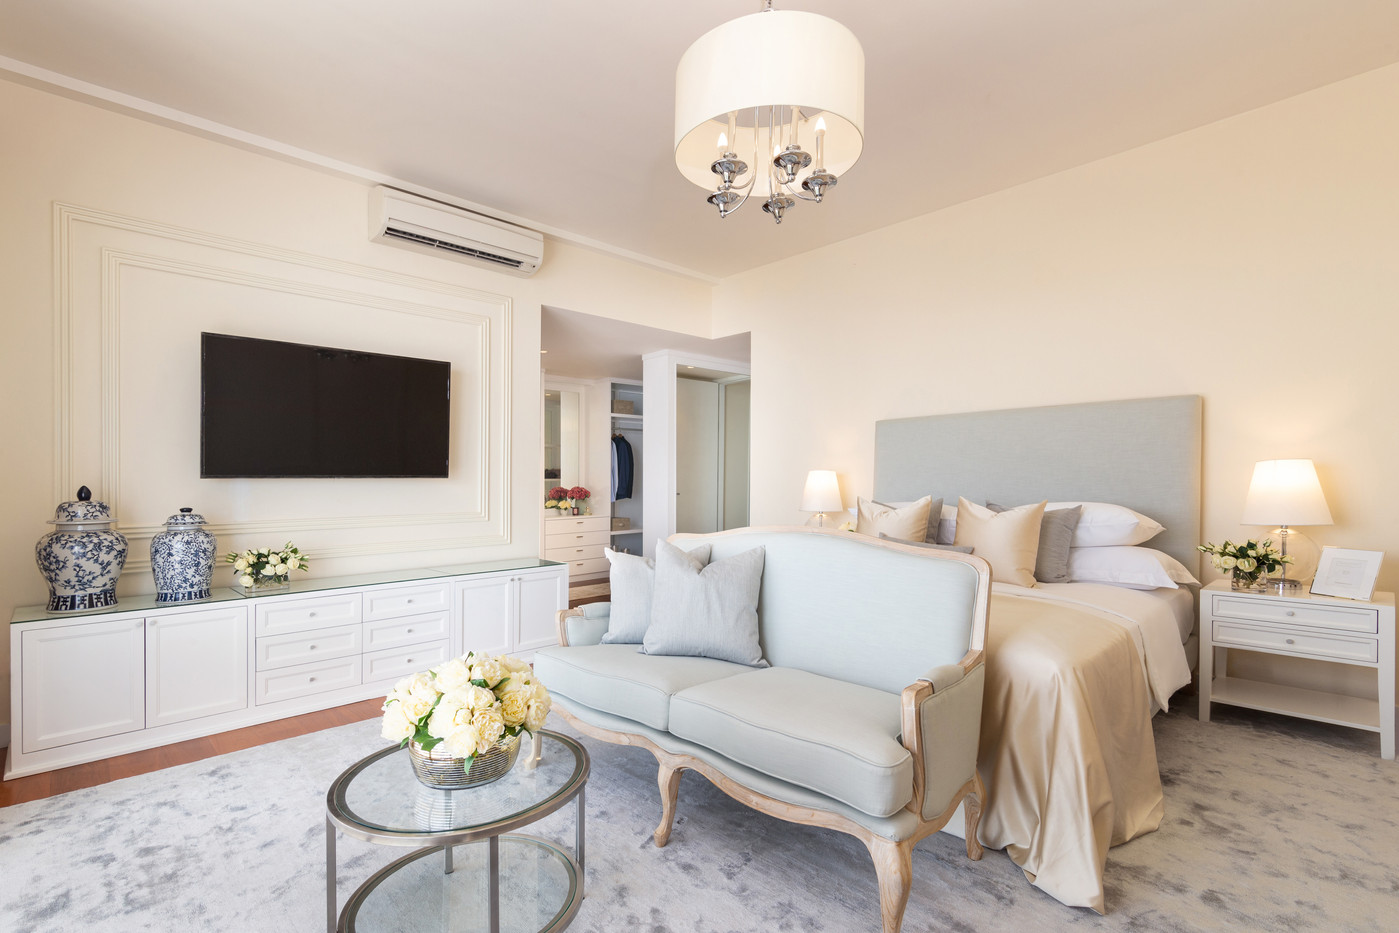 Bedroom at One Galle Face Residences by Creative Heritage Interiors